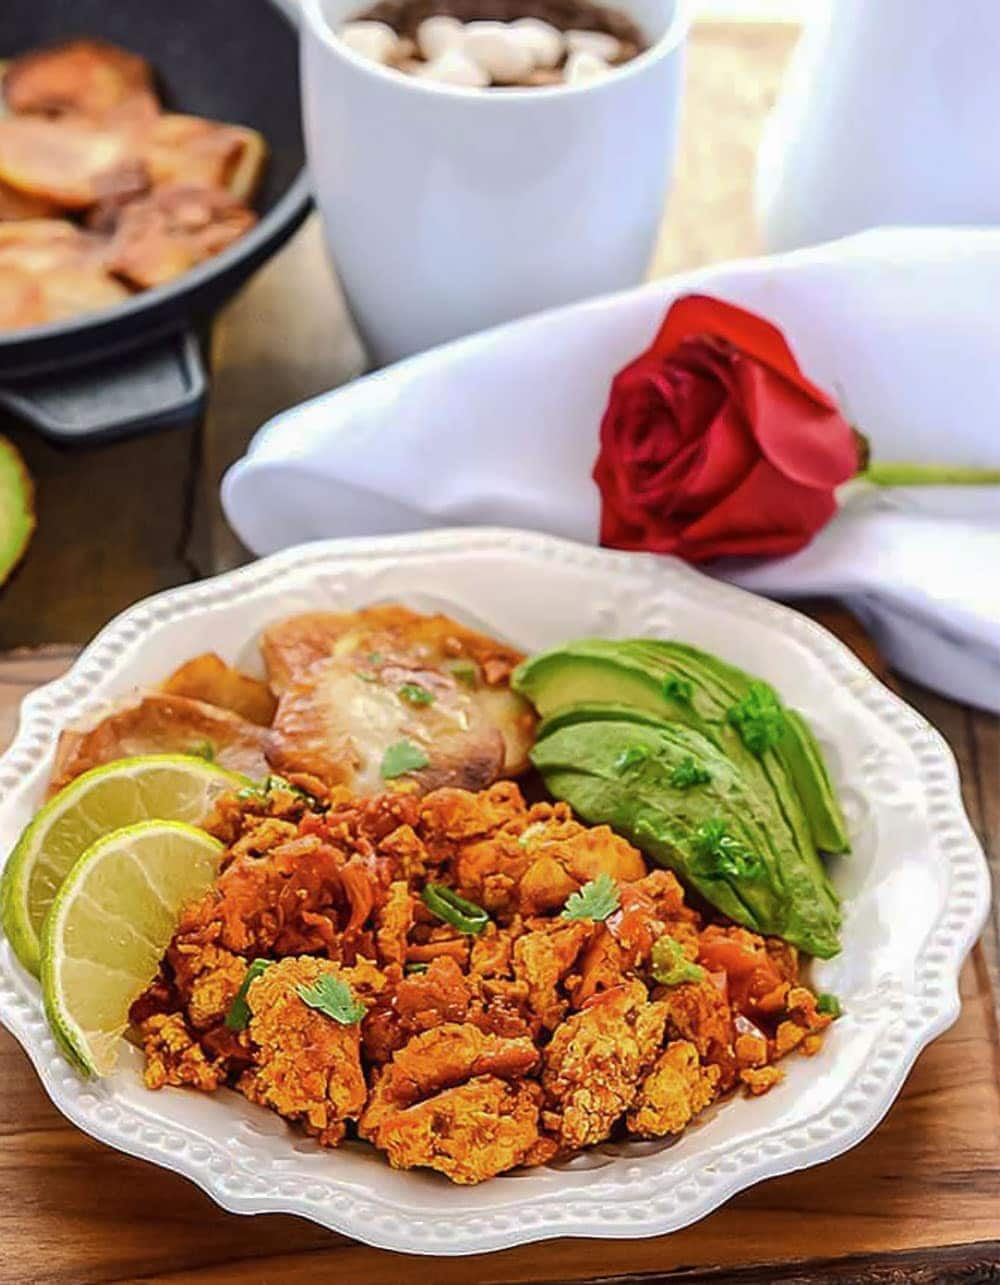 Scrambled tofu mexican-style using tex-mex herbs and spices, served with fried potatoes, avocado and garnished with cilantro and lime slices on a white plate, on a wooden background with a white napkin in the background with a red rose and lime